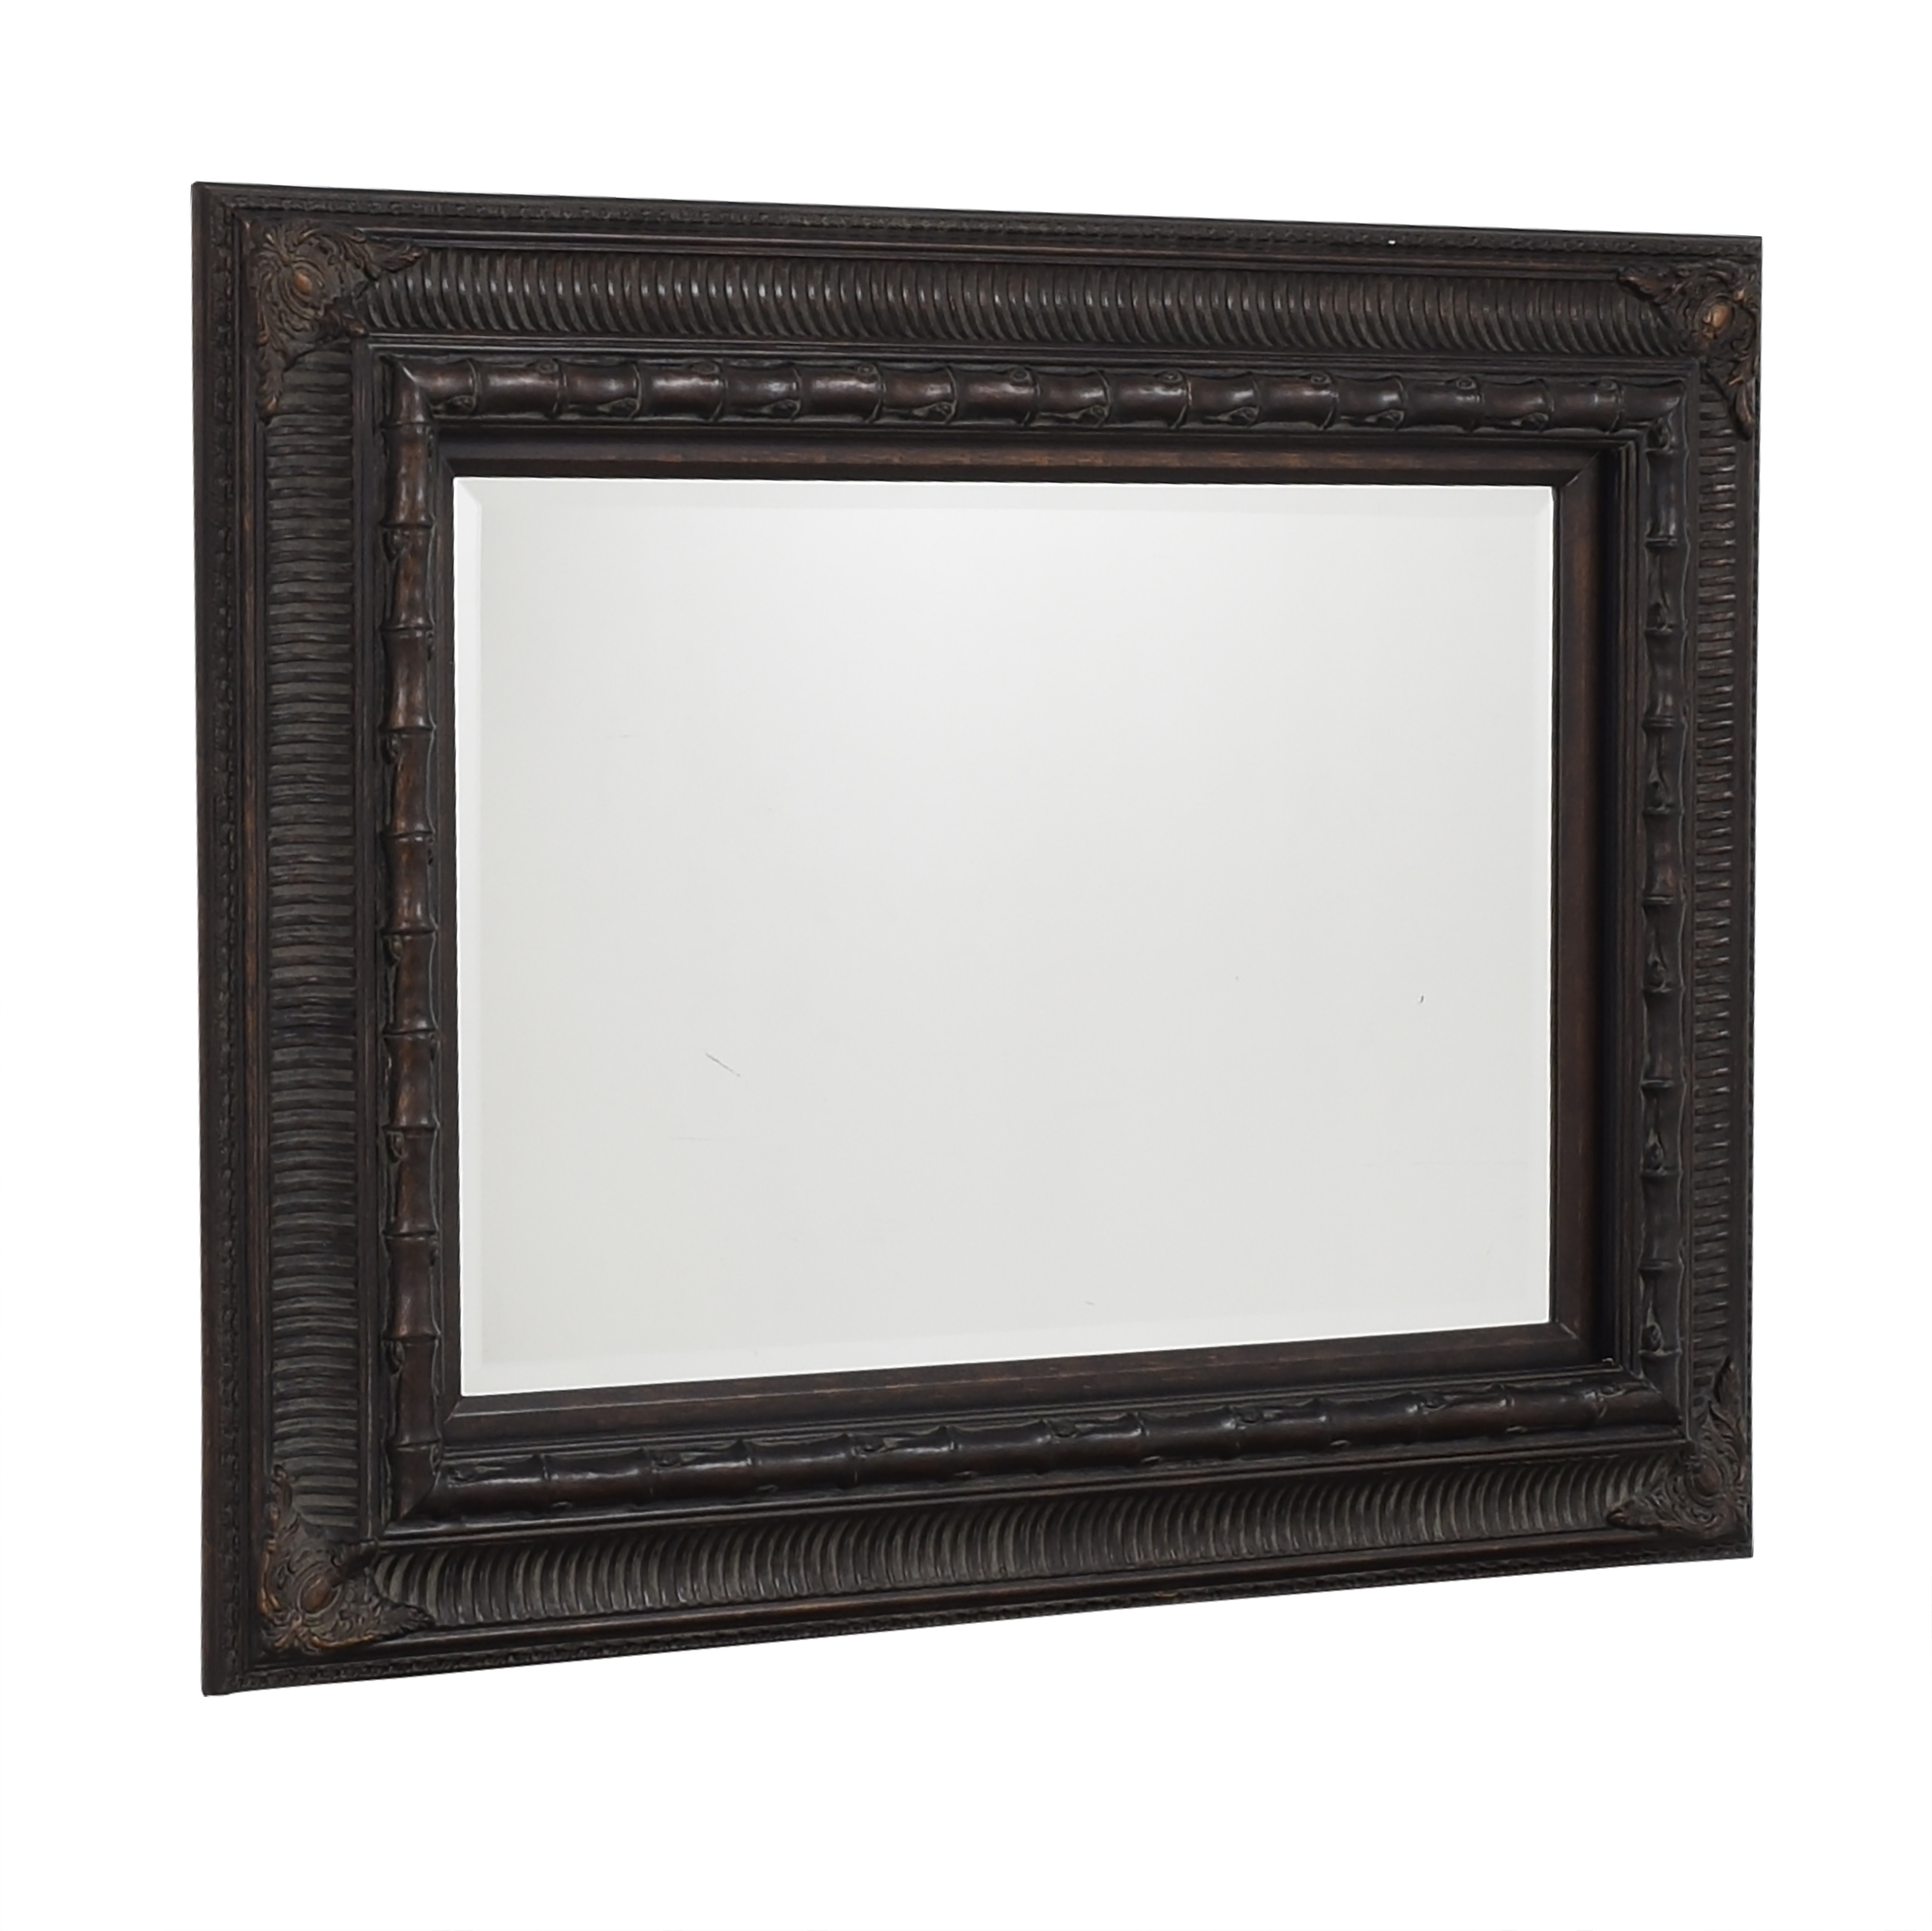 Craved Frame Wall Mirror